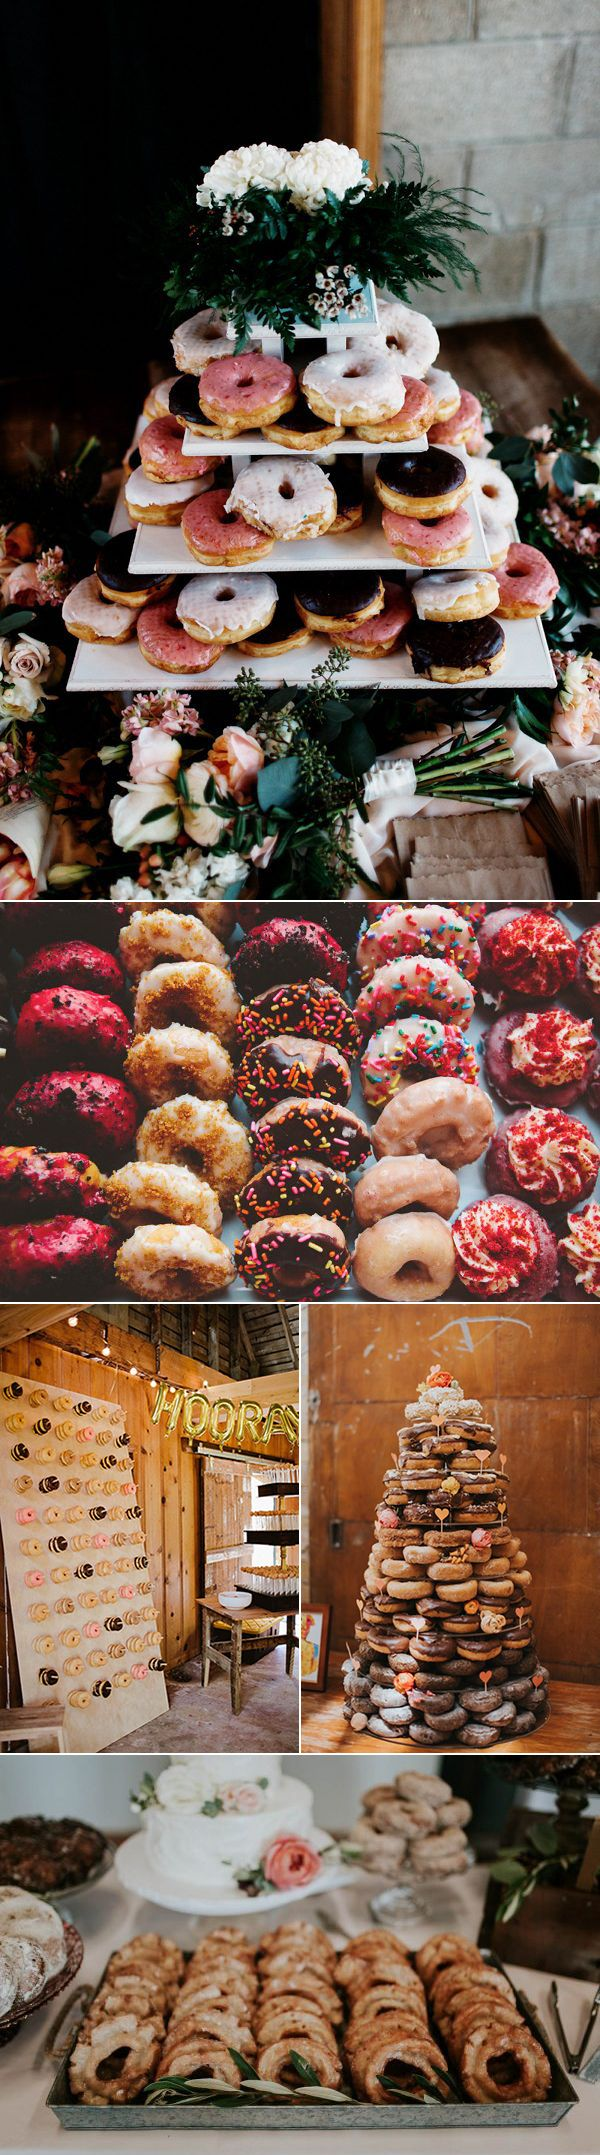 5 Dessert Ideas That Will Make You Reconsider Your Wedding Cake